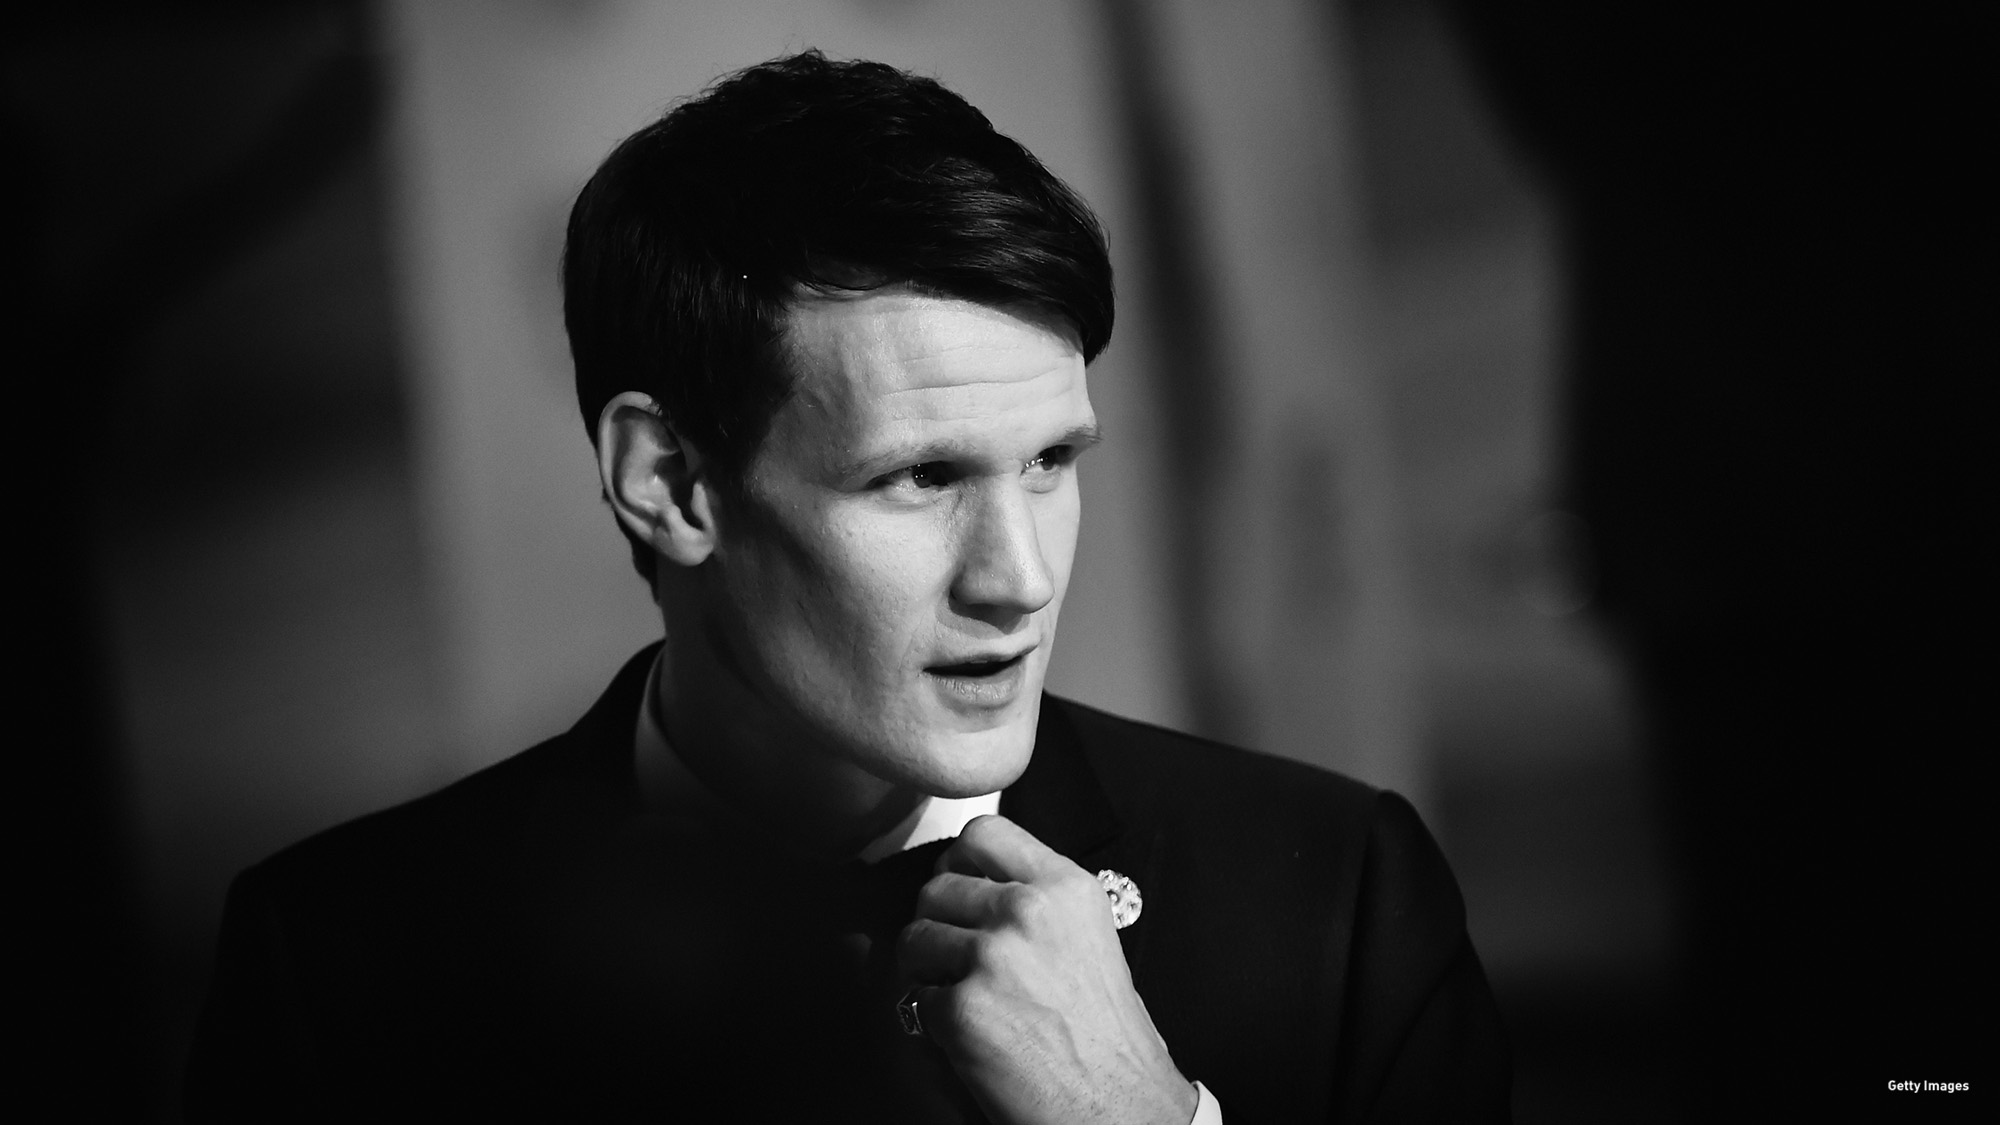 Matt Smith will star in 'Patient Zero'. (Pic: Gareth Cattermole/Getty Images)